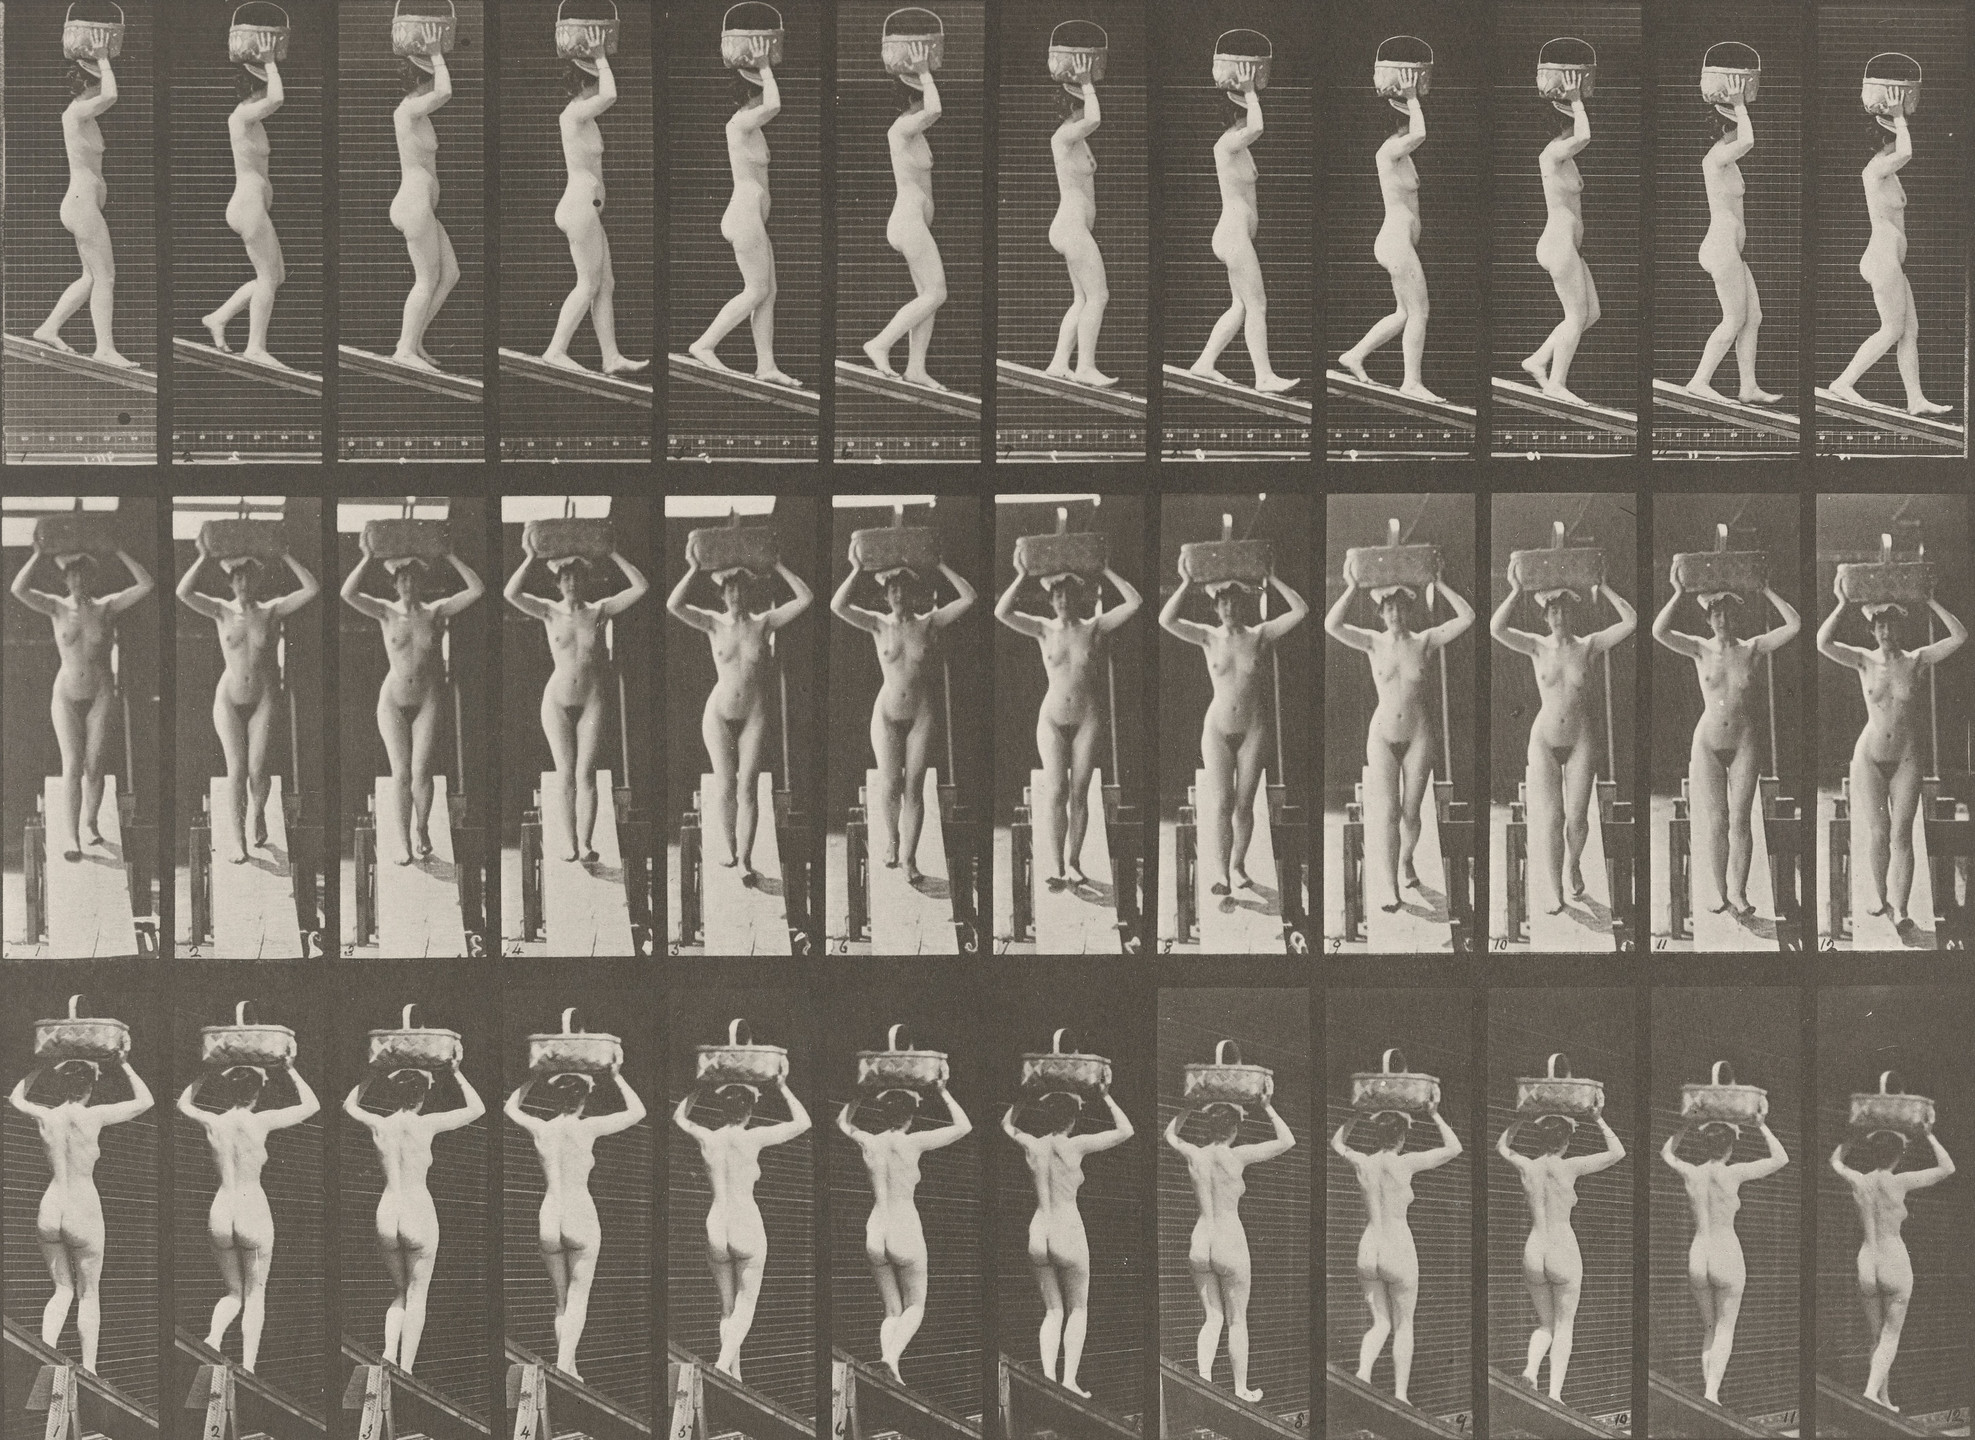 Eadweard J. Muybridge. Woman Descending an Incline with a 20-lb. Basket on Head, Hands Raised: Plate 124 from Animal Locomotion (1887). 1884-86